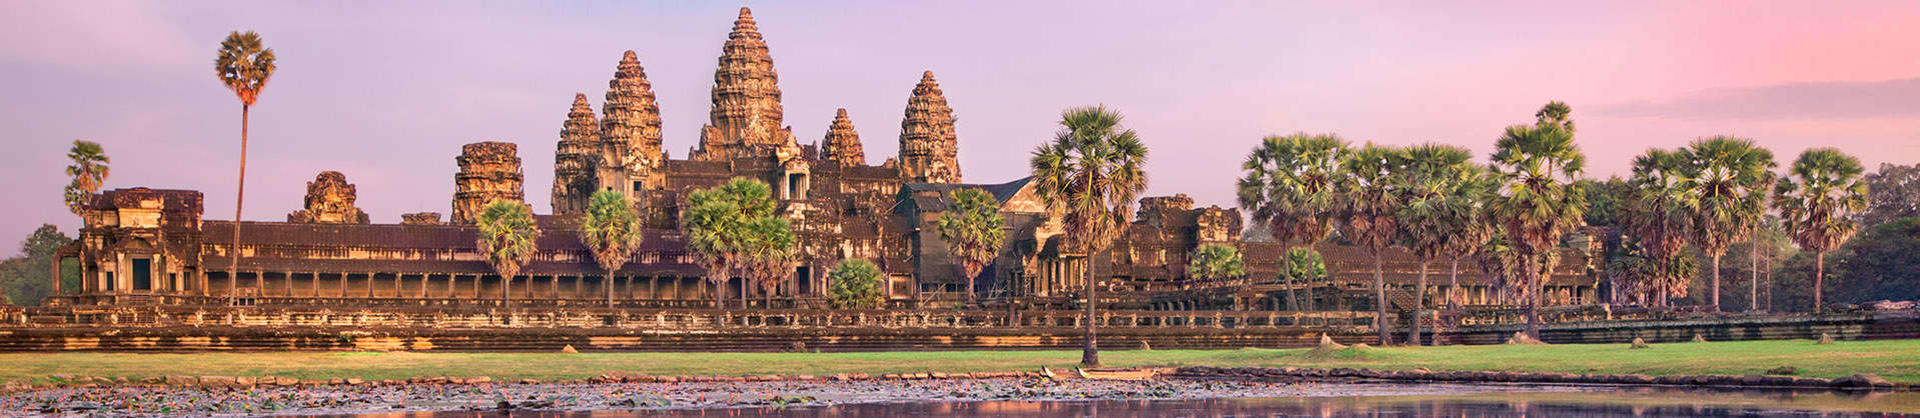 Angkor Wat at sunset in Siem Reap in Cambodia